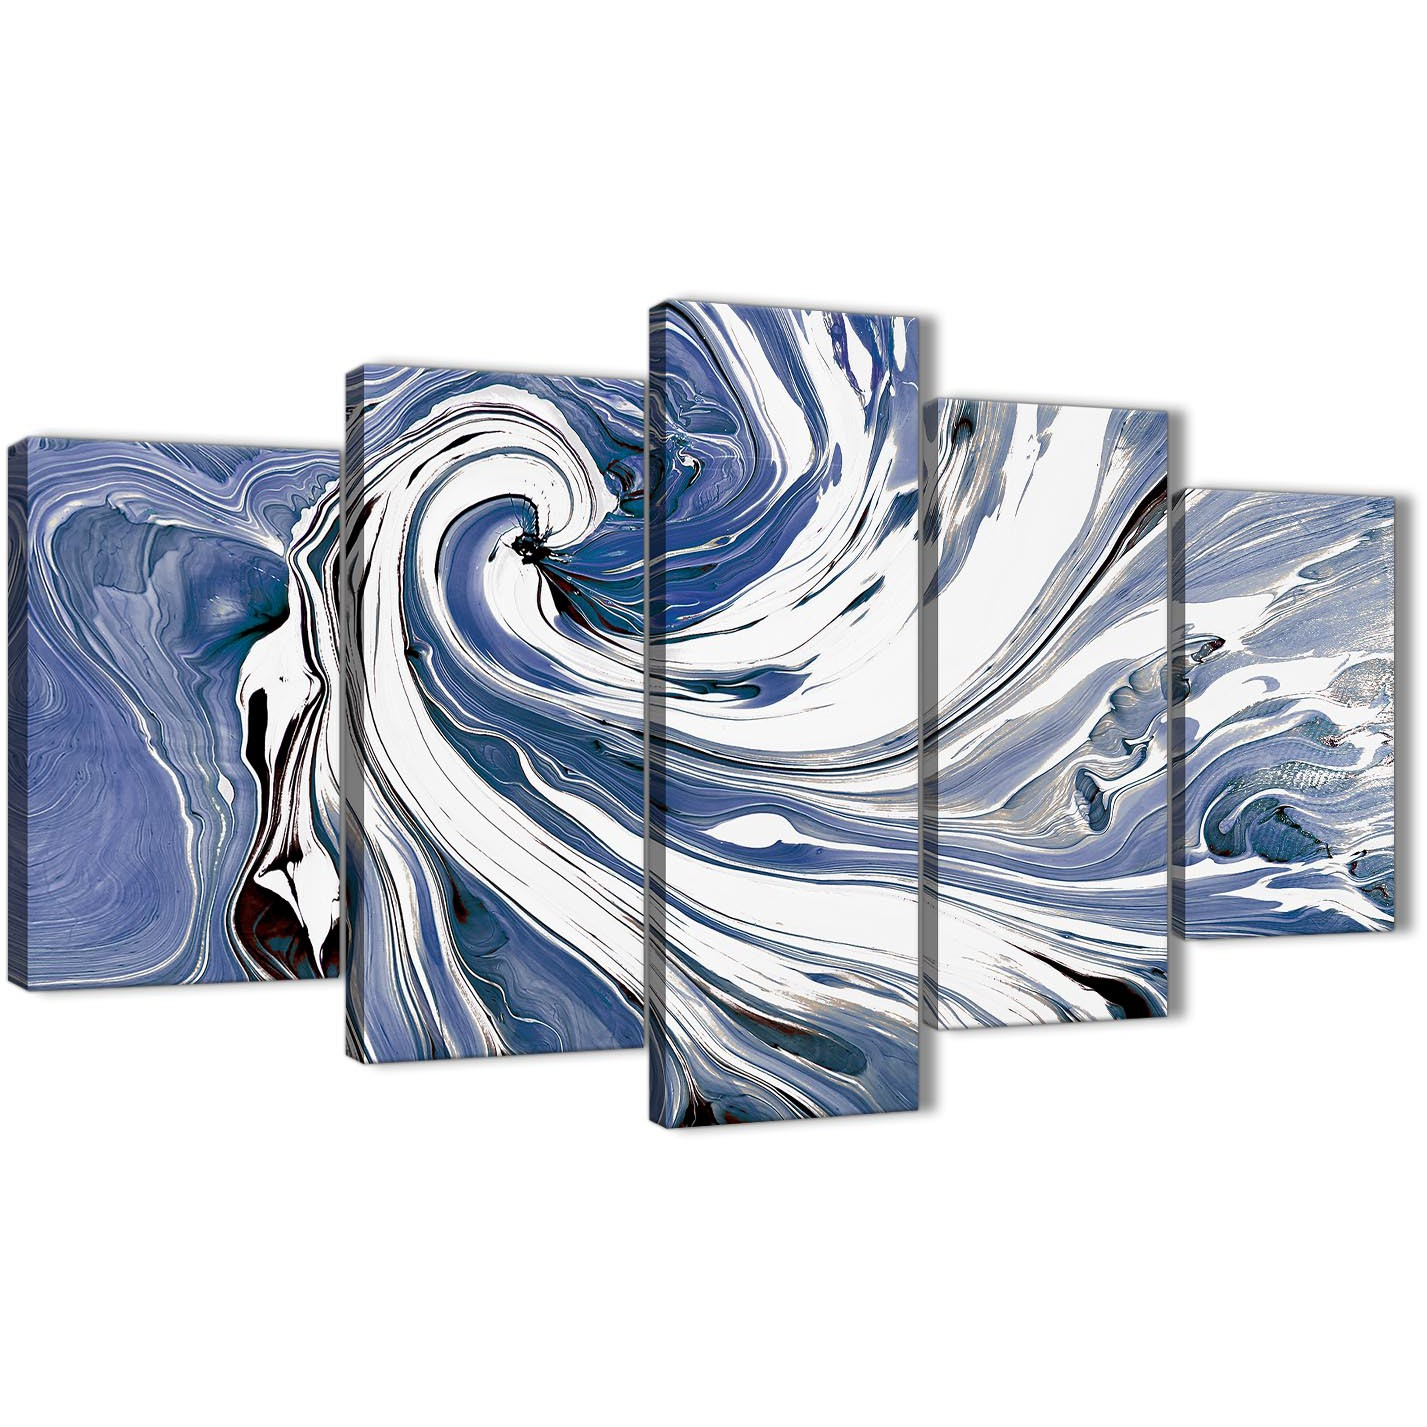 Extra Large Indigo Blue White Swirls Modern Abstract Canvas Wall Art